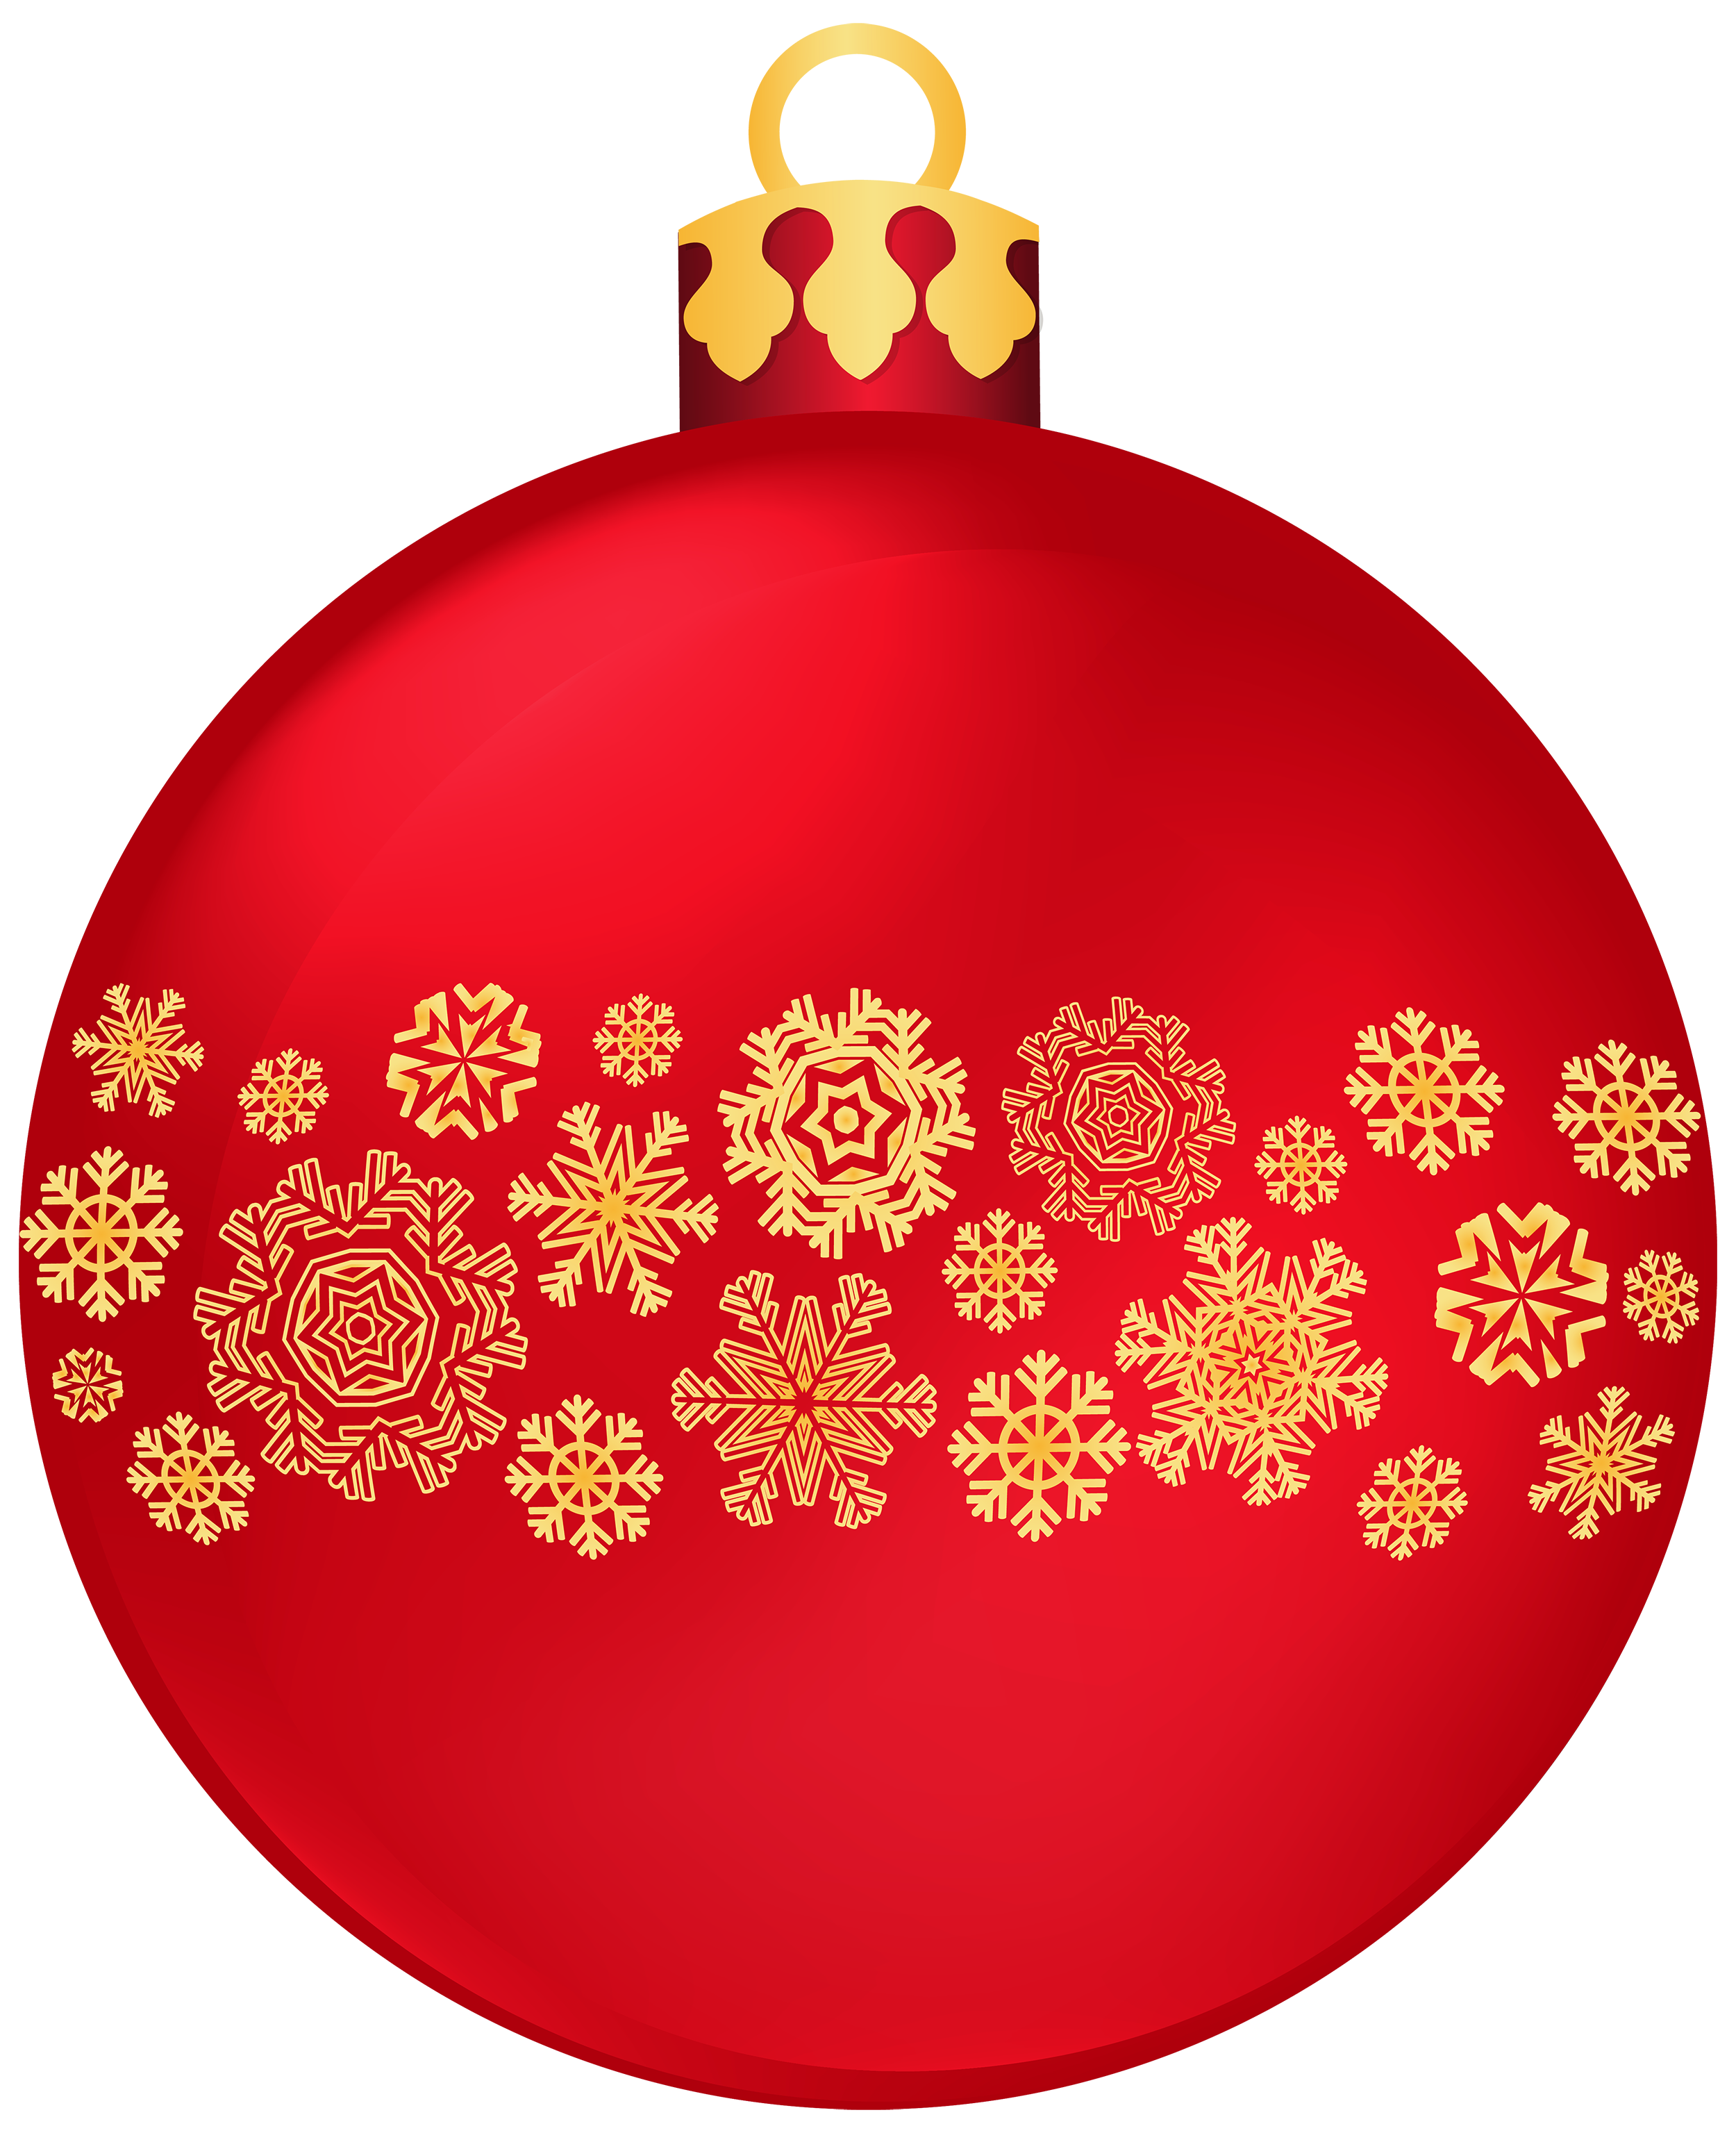 Red Christmas Ball with Snowflakes PNG Clipart.